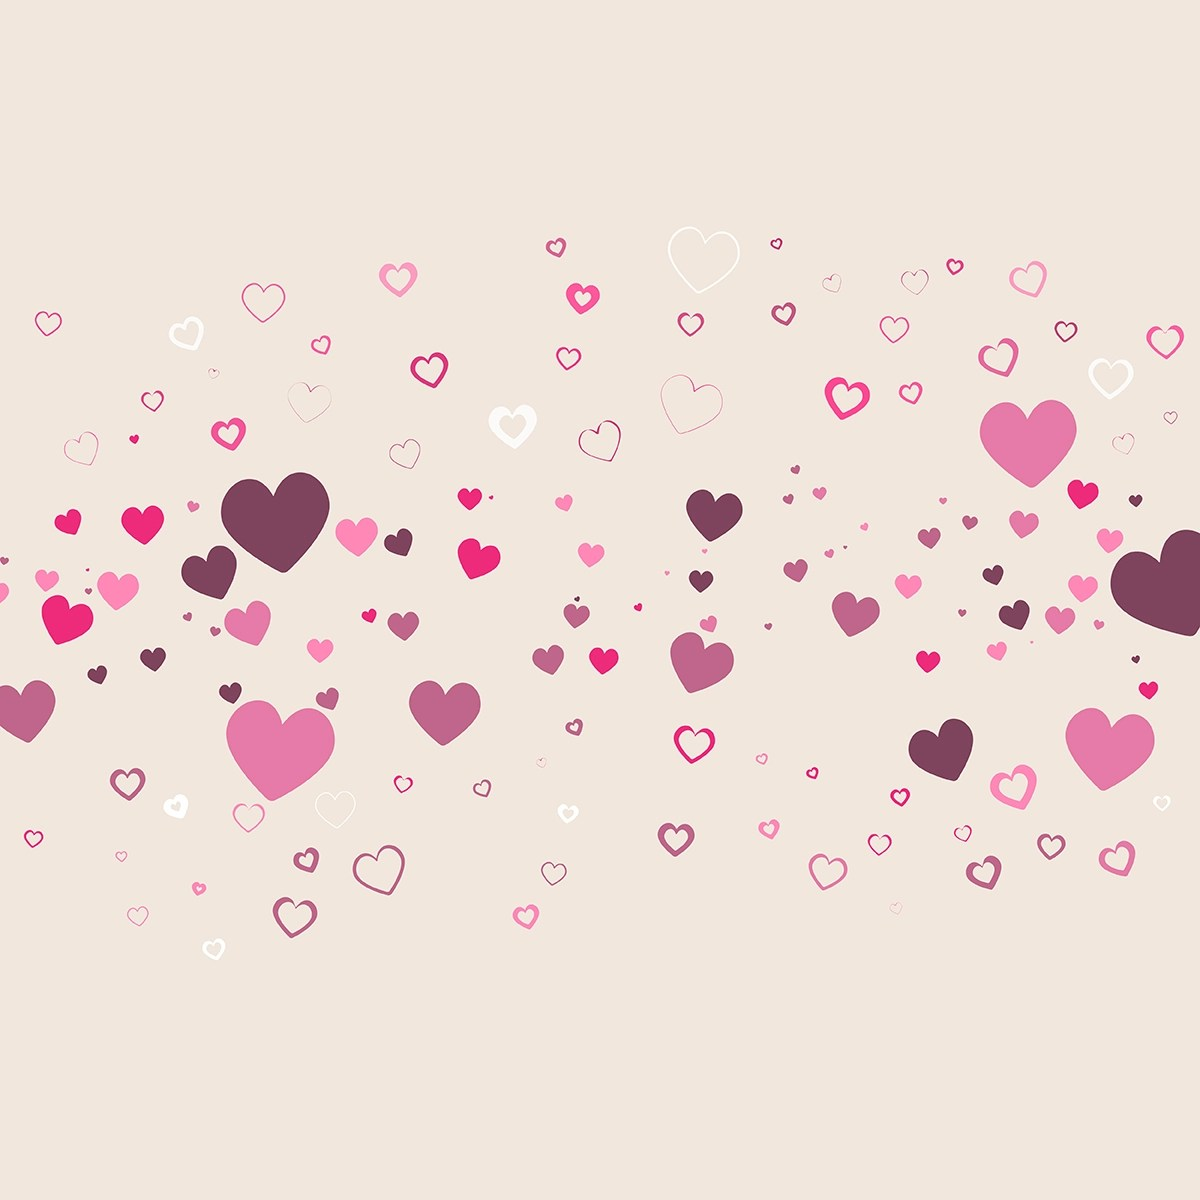 Stylish Wallpaper Heart Valentine 39;s Day Heart Background Download Free Vectors